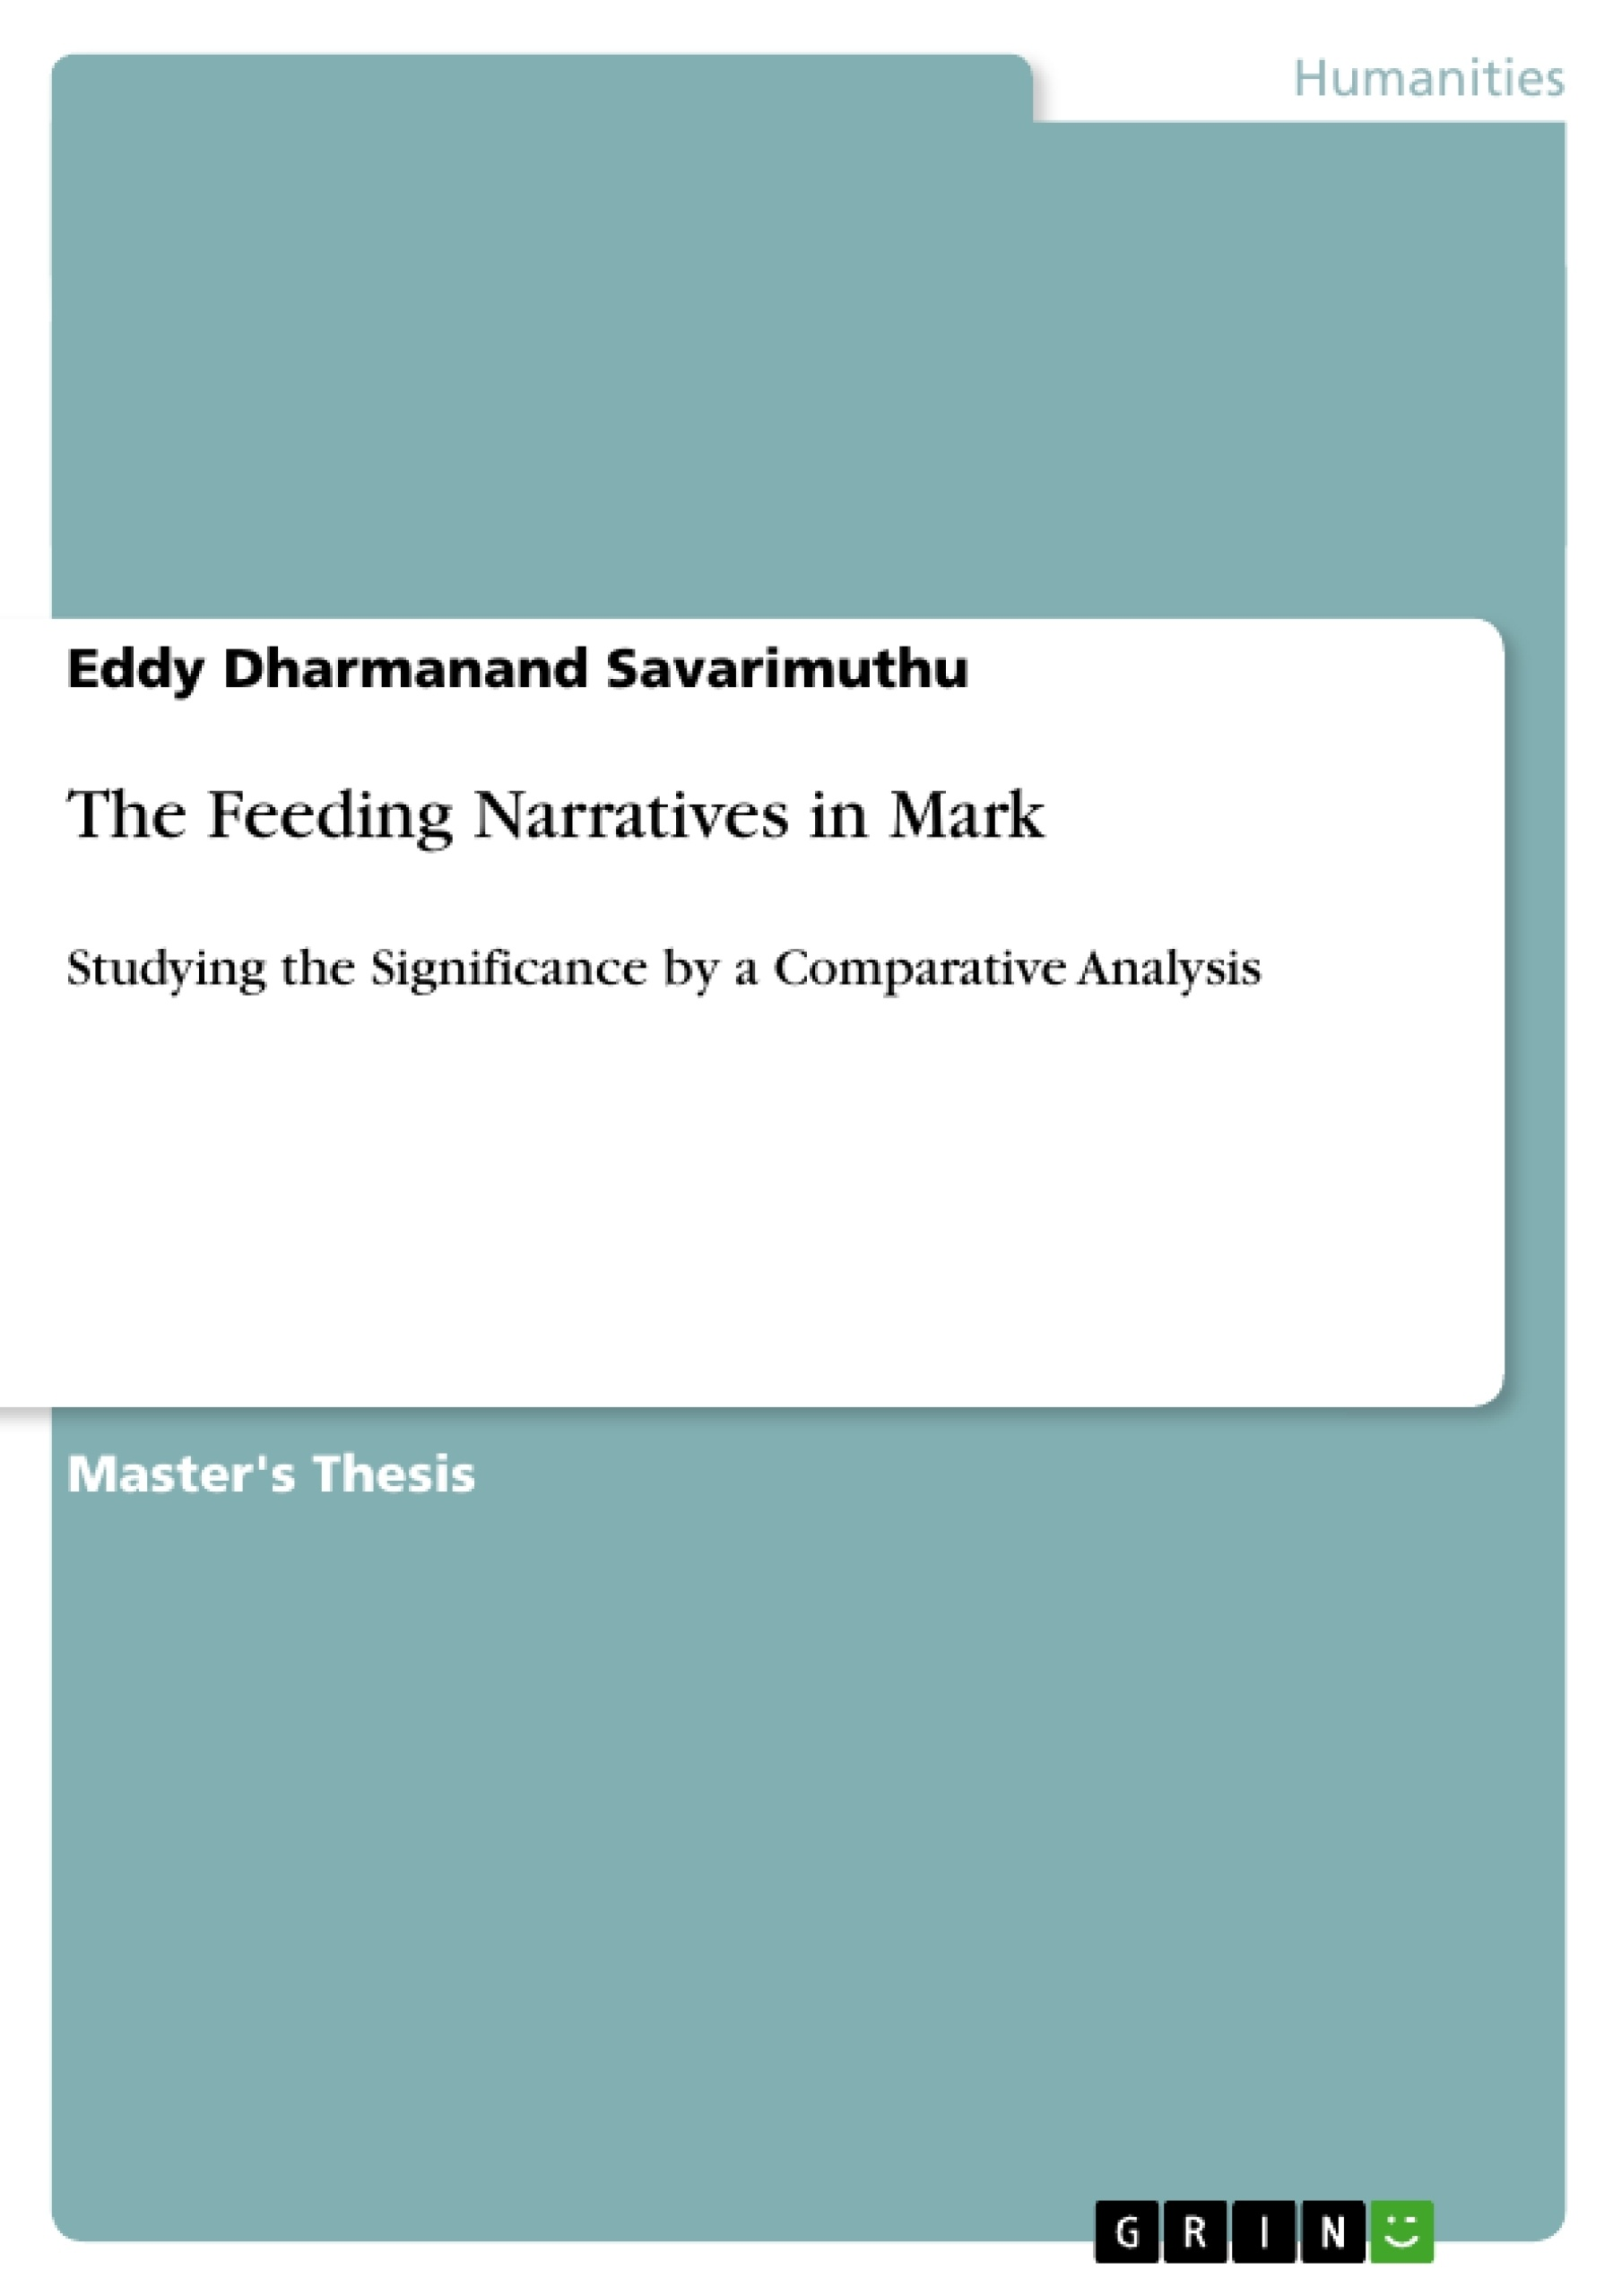 Title: The Feeding Narratives in Mark